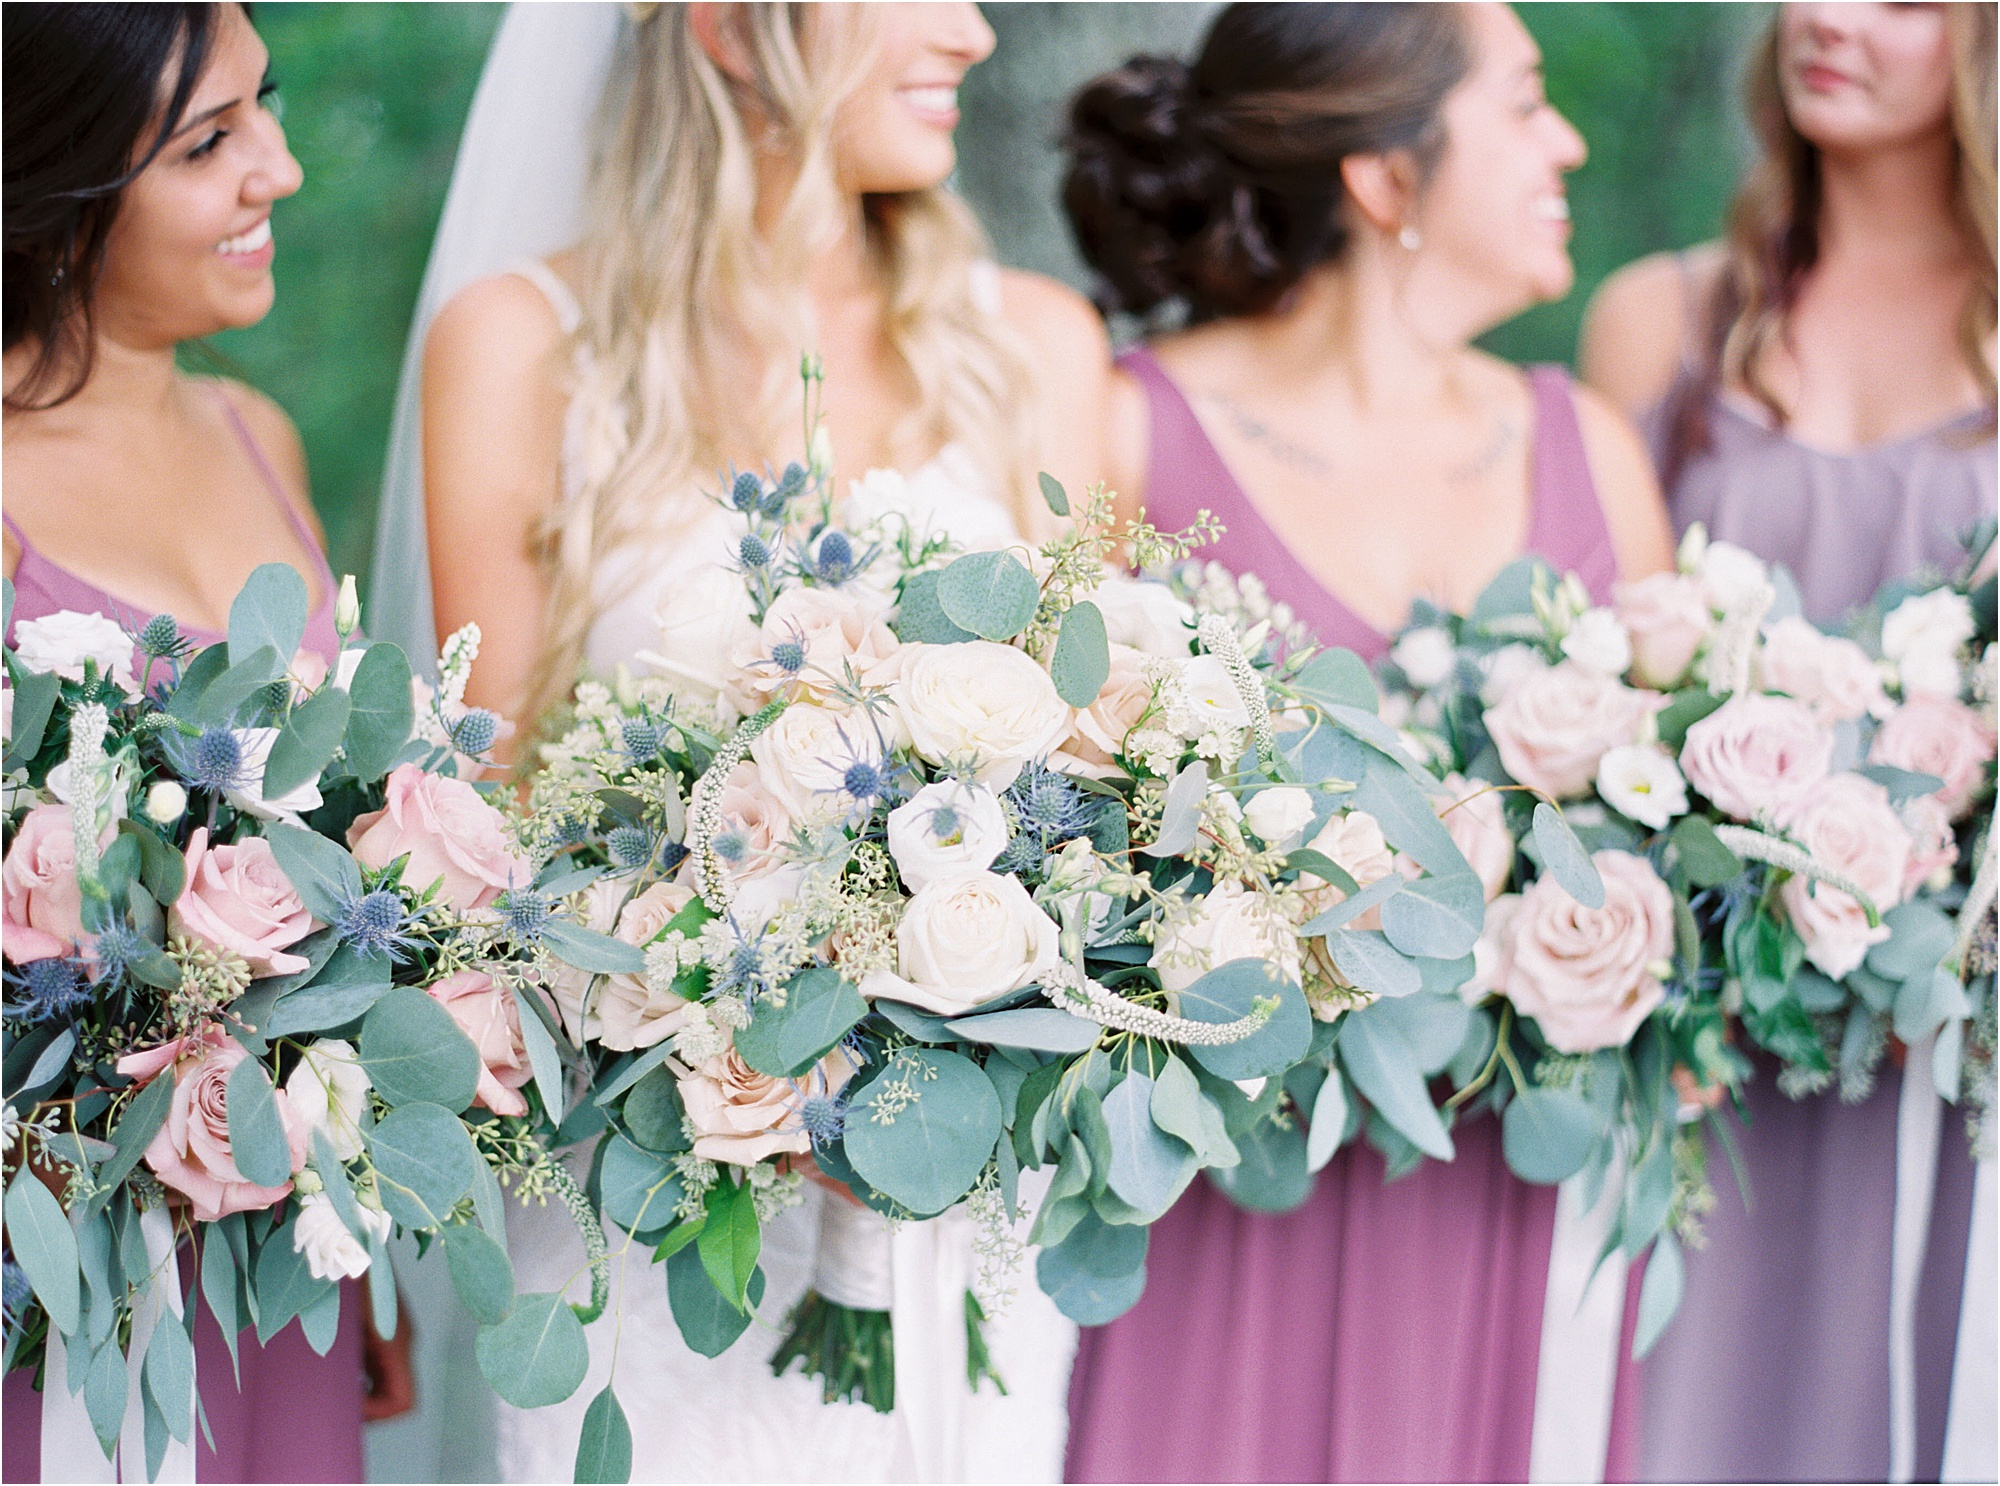 bride and bridesmaids in lilac dresses holding lush wedding bouquets